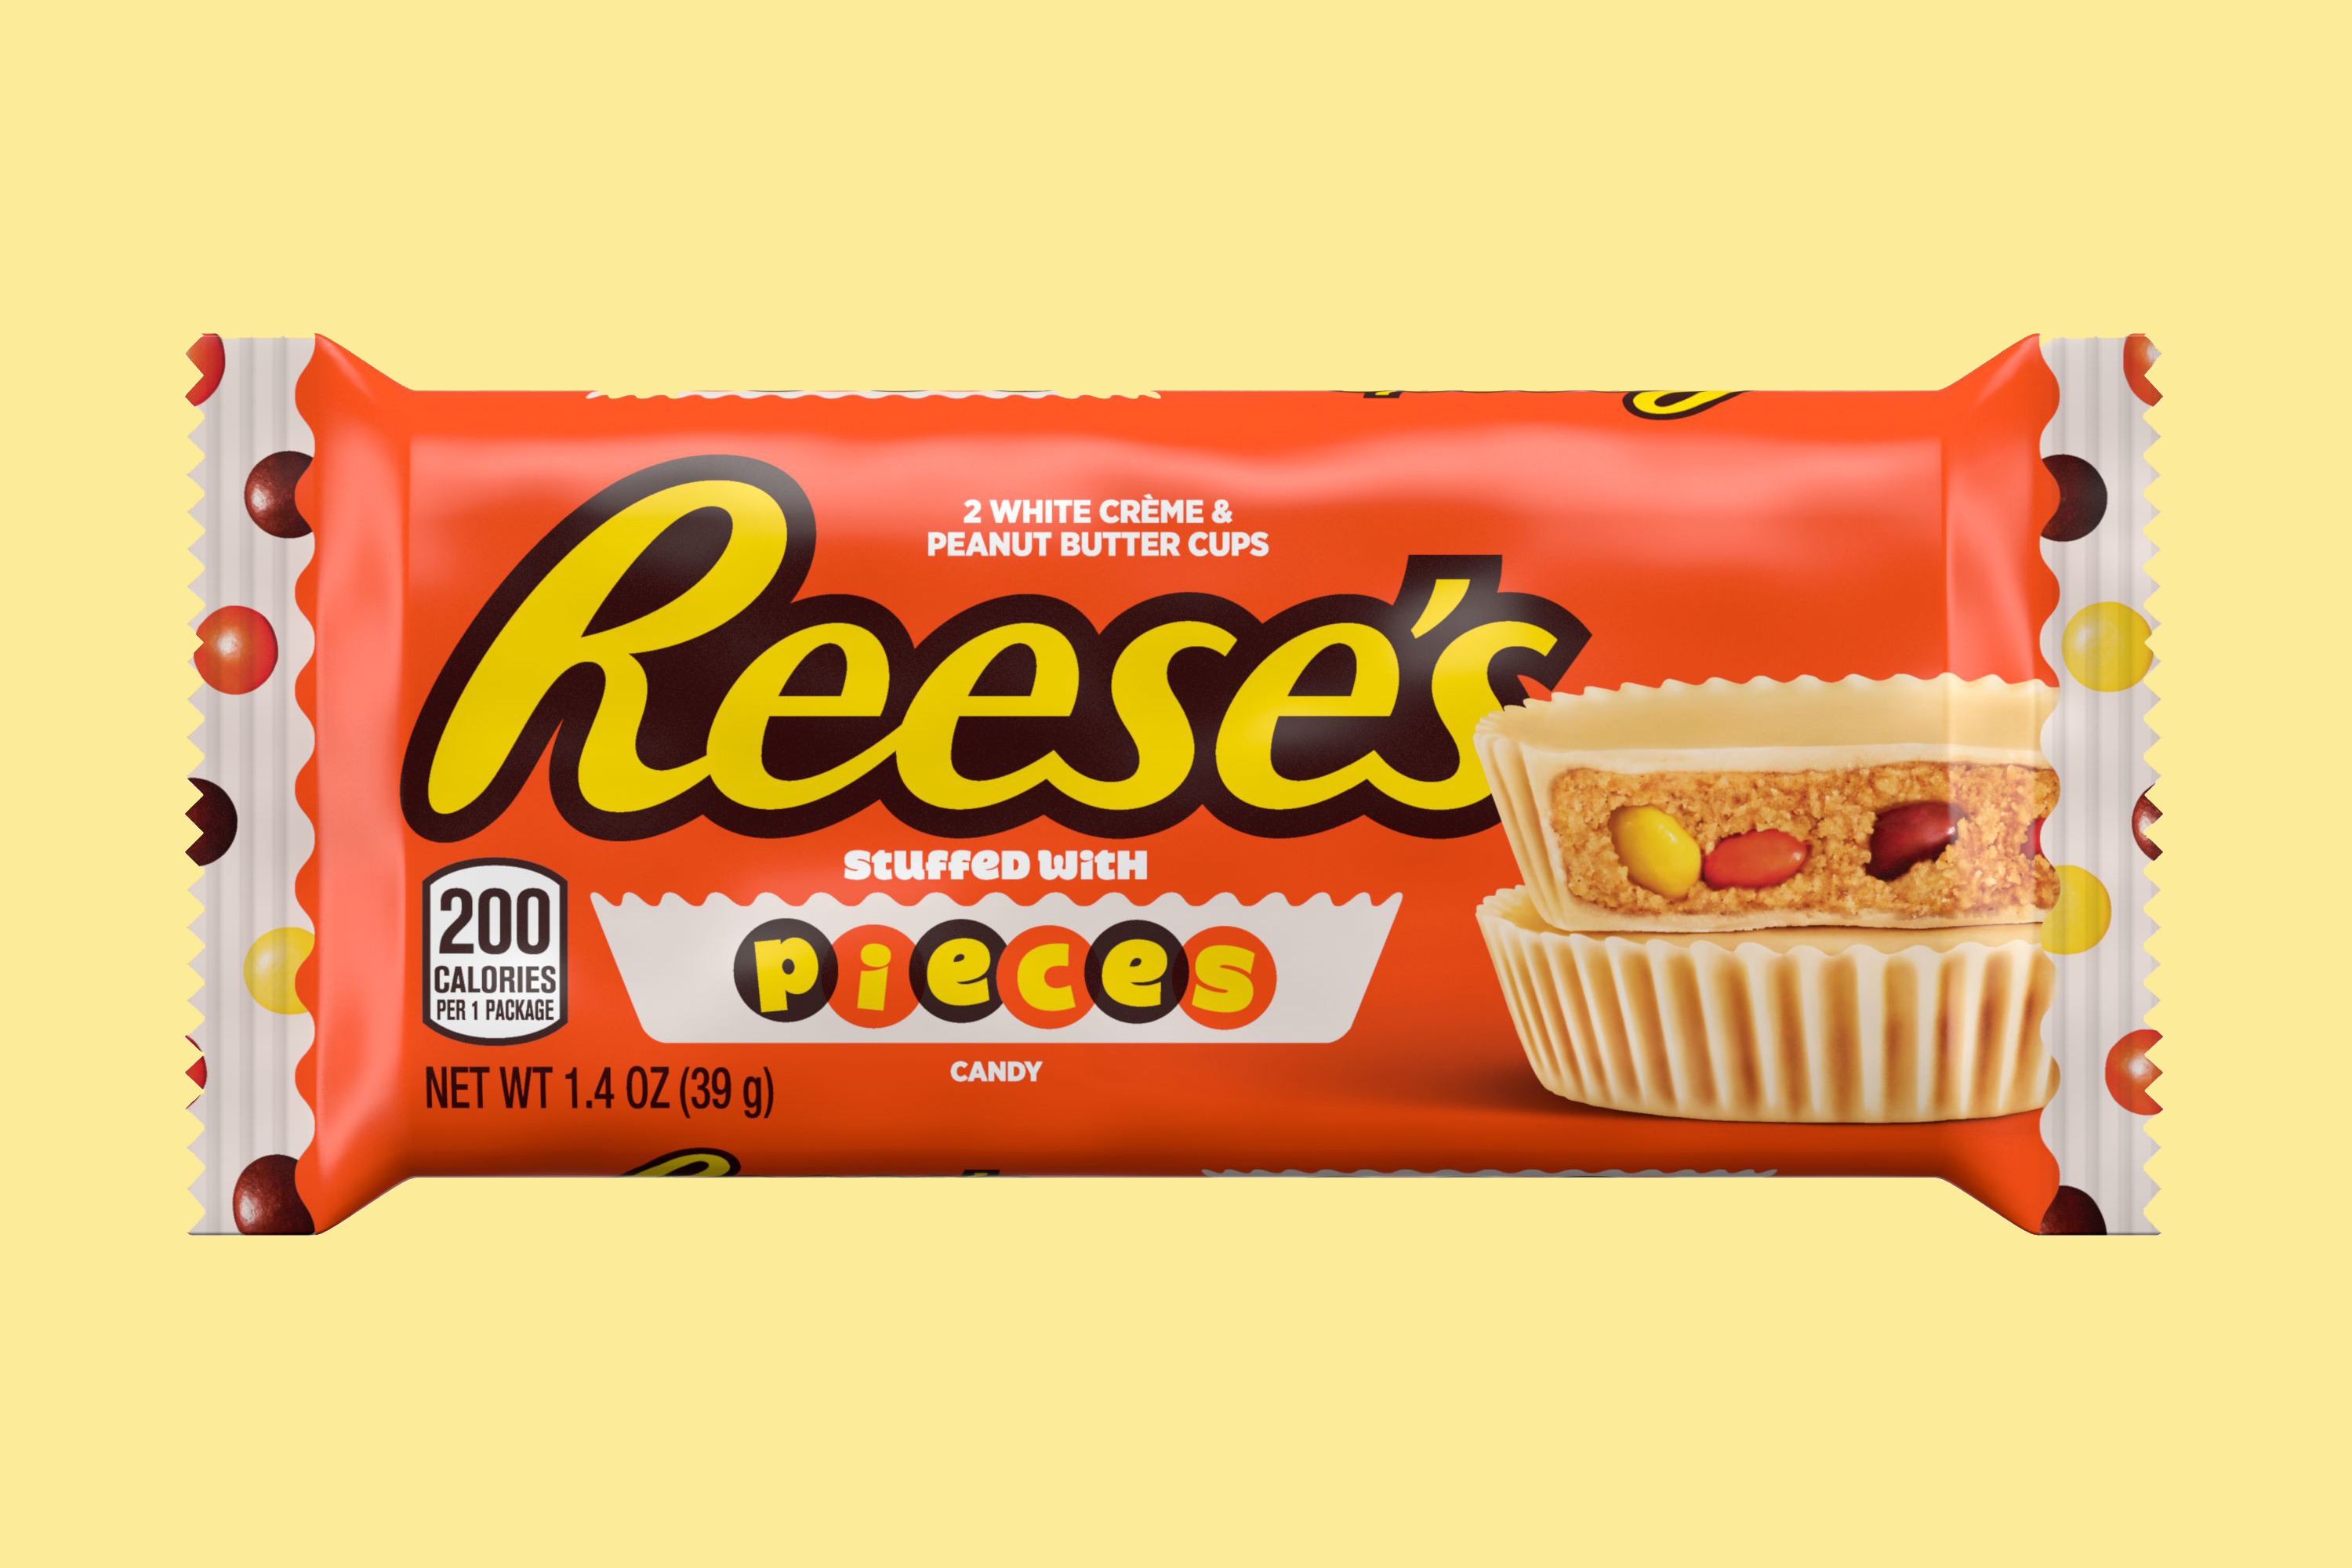 White Creme Reese's Cups with Pieces